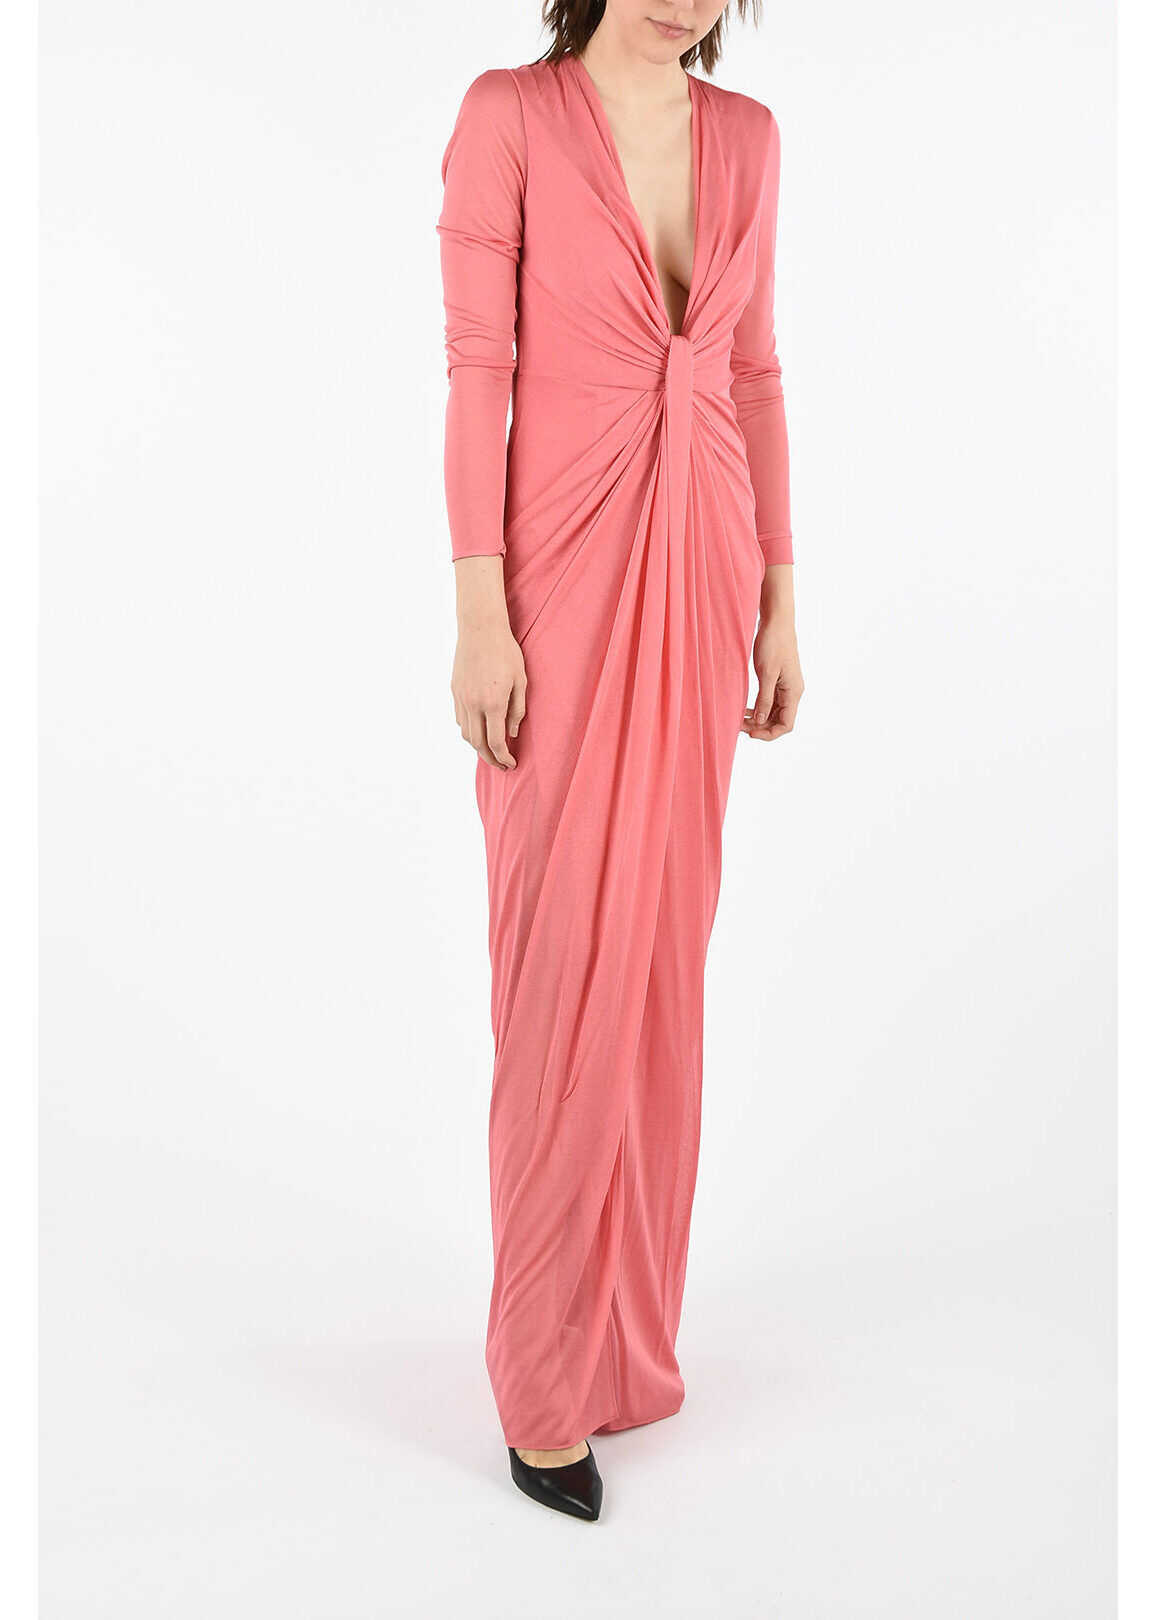 Tom Ford long sleeve empire dress PINK